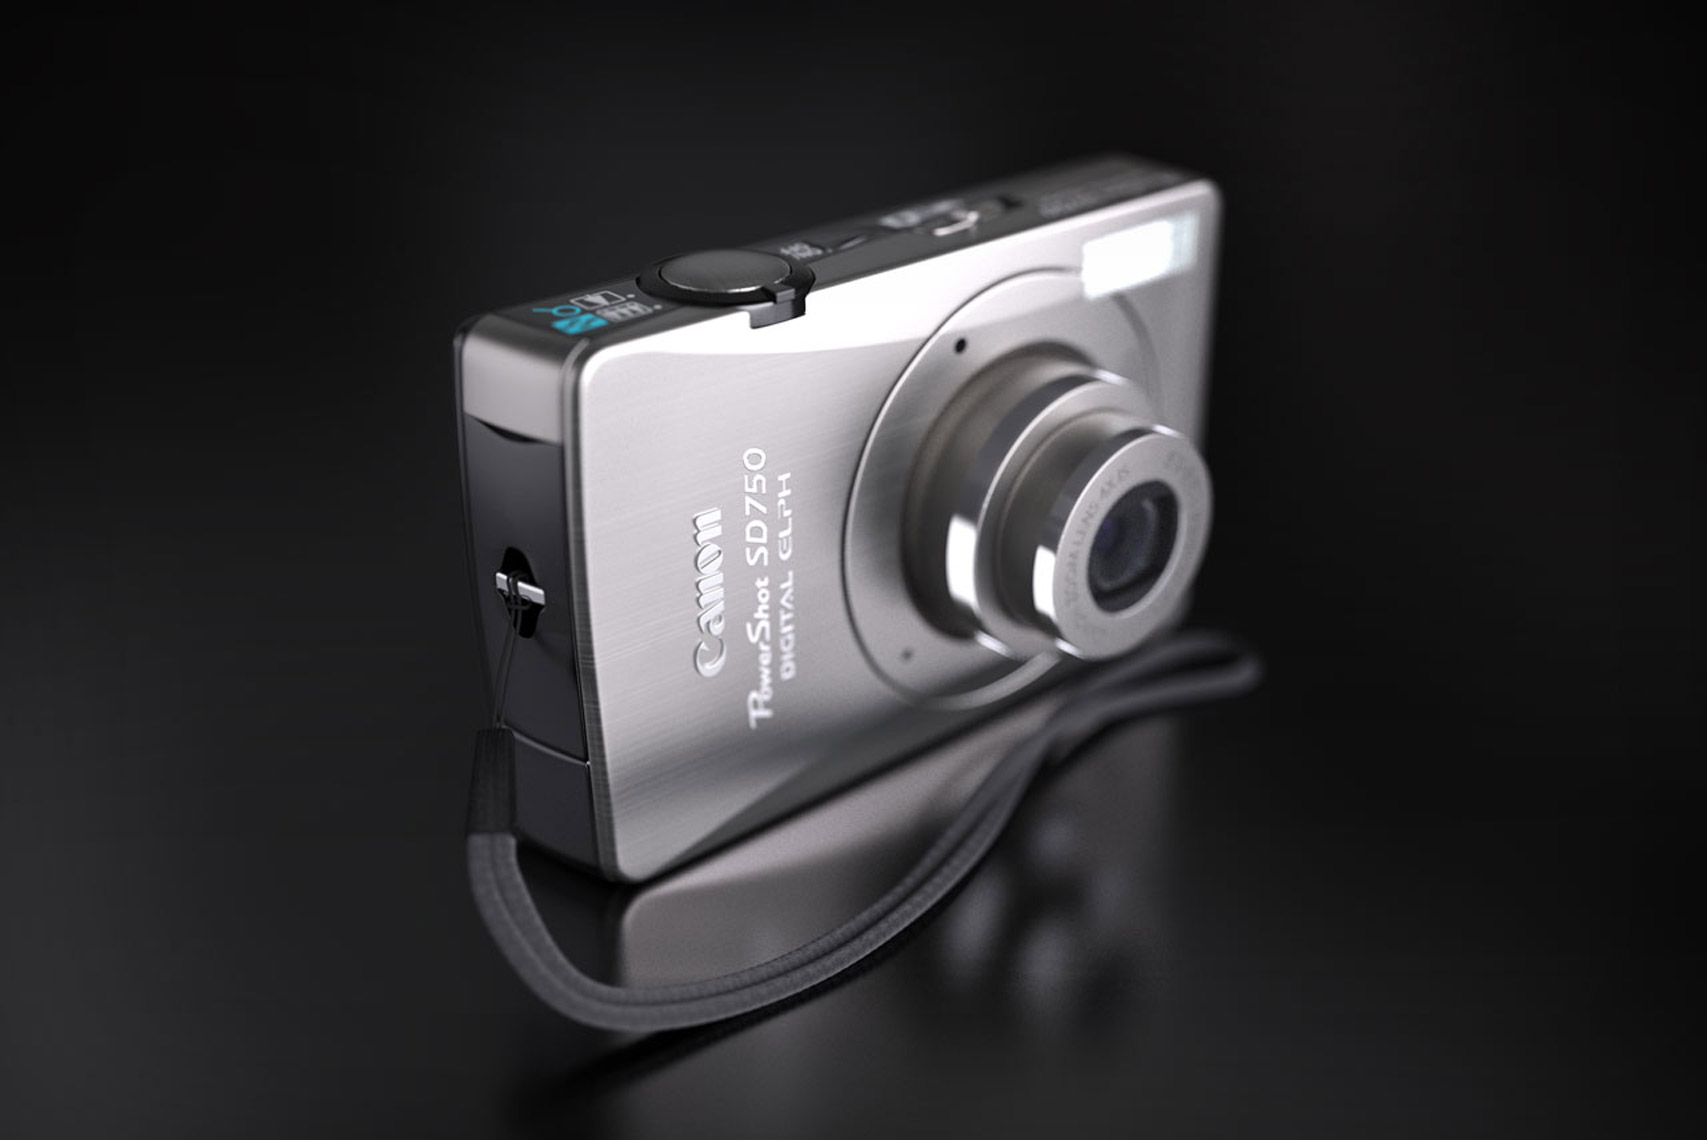 Canon 750 Camera CGI Illustration